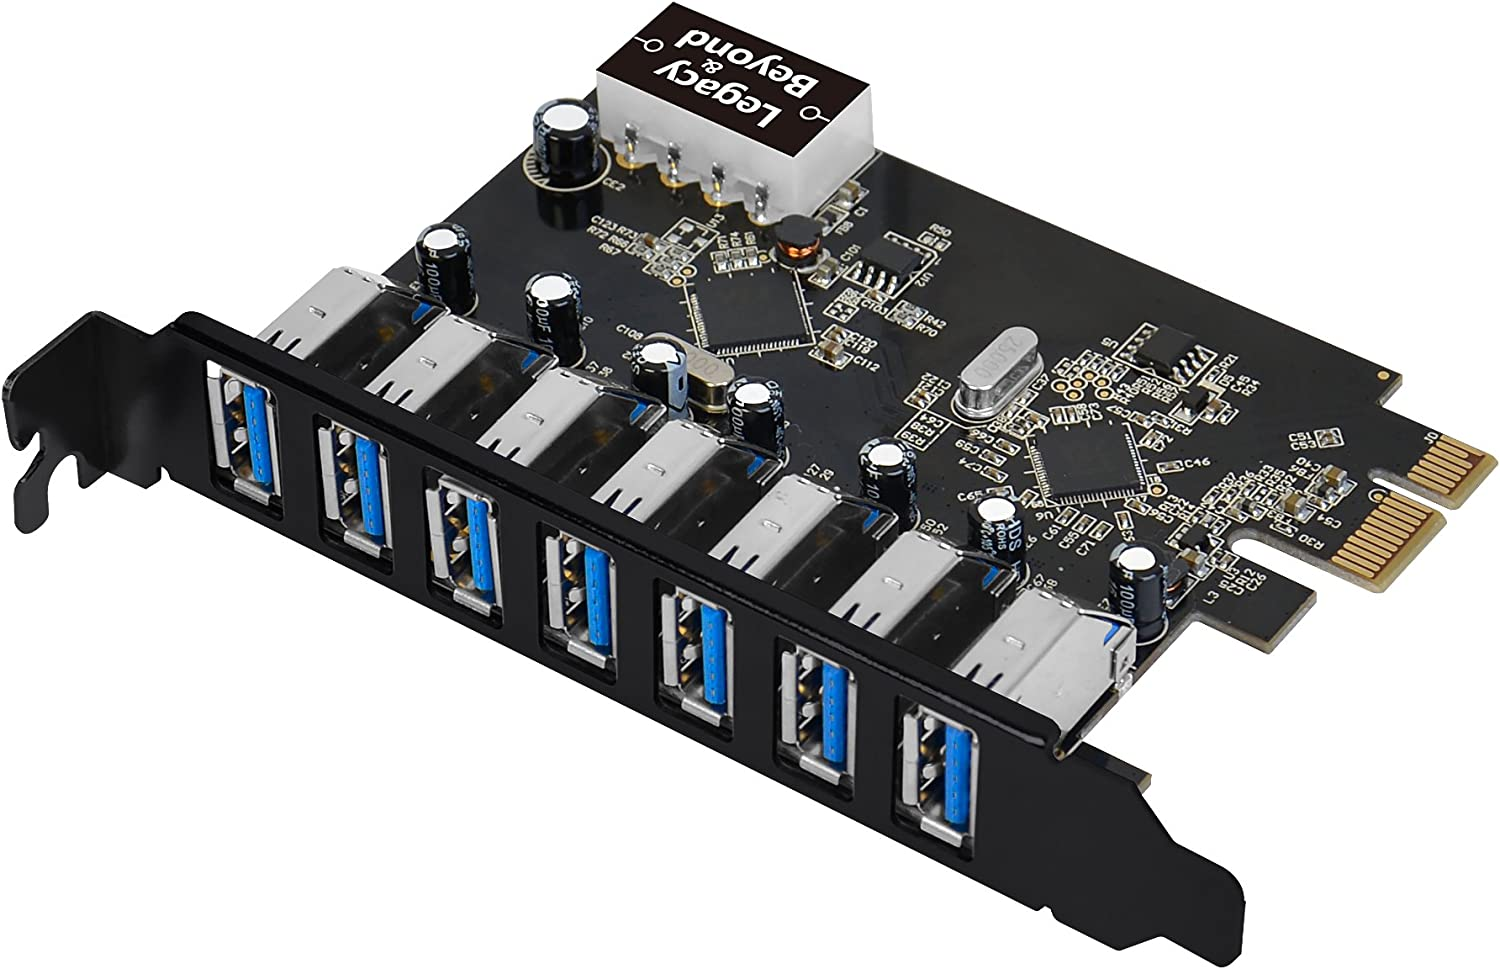 SIIG Legacy and Beyond Series PCIe to USB 3.0 7-Port PCI Express Card (External PCIe Host Card), Supports UASP